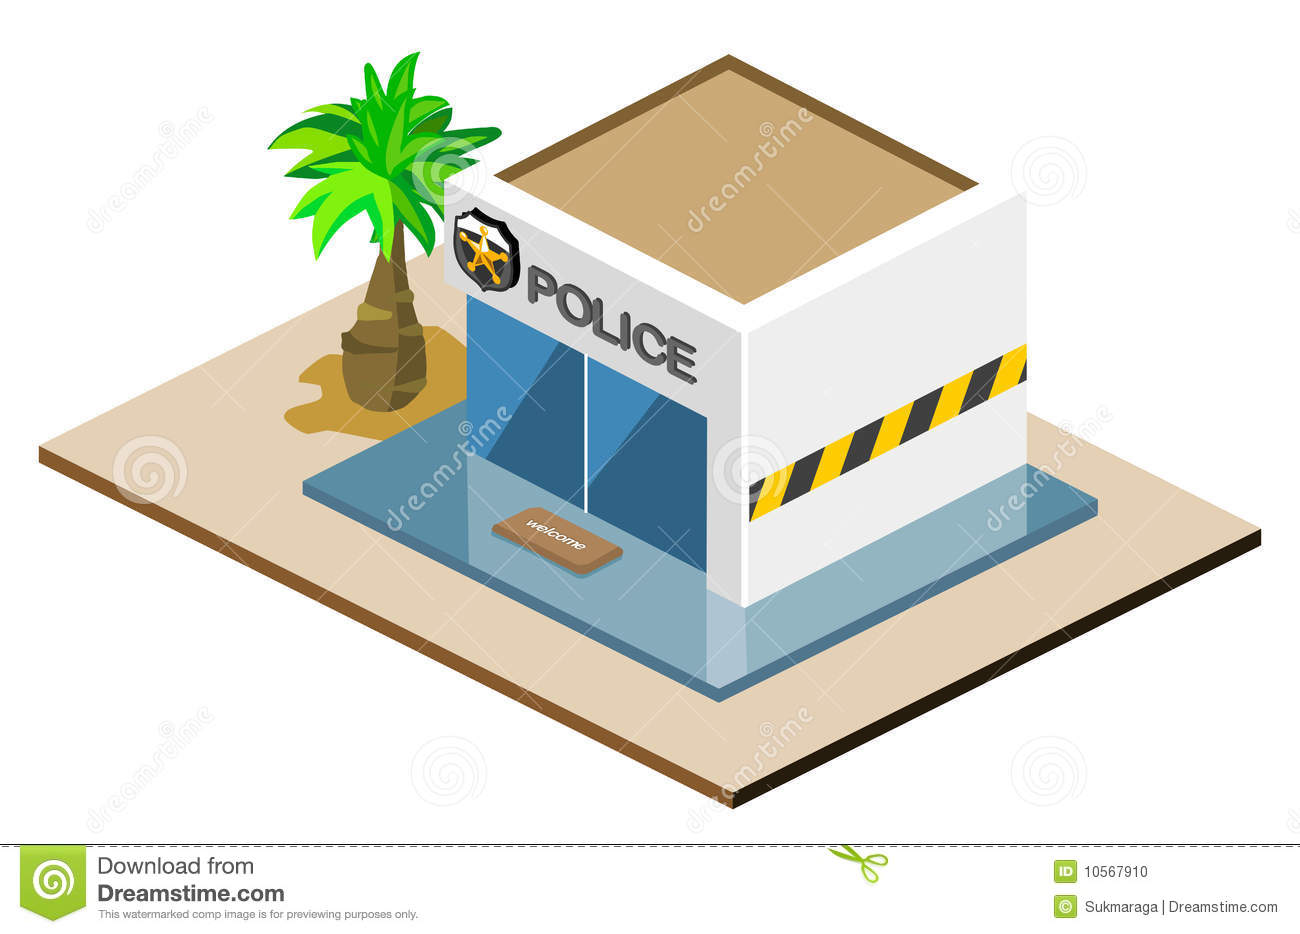 Police clipart police station #2